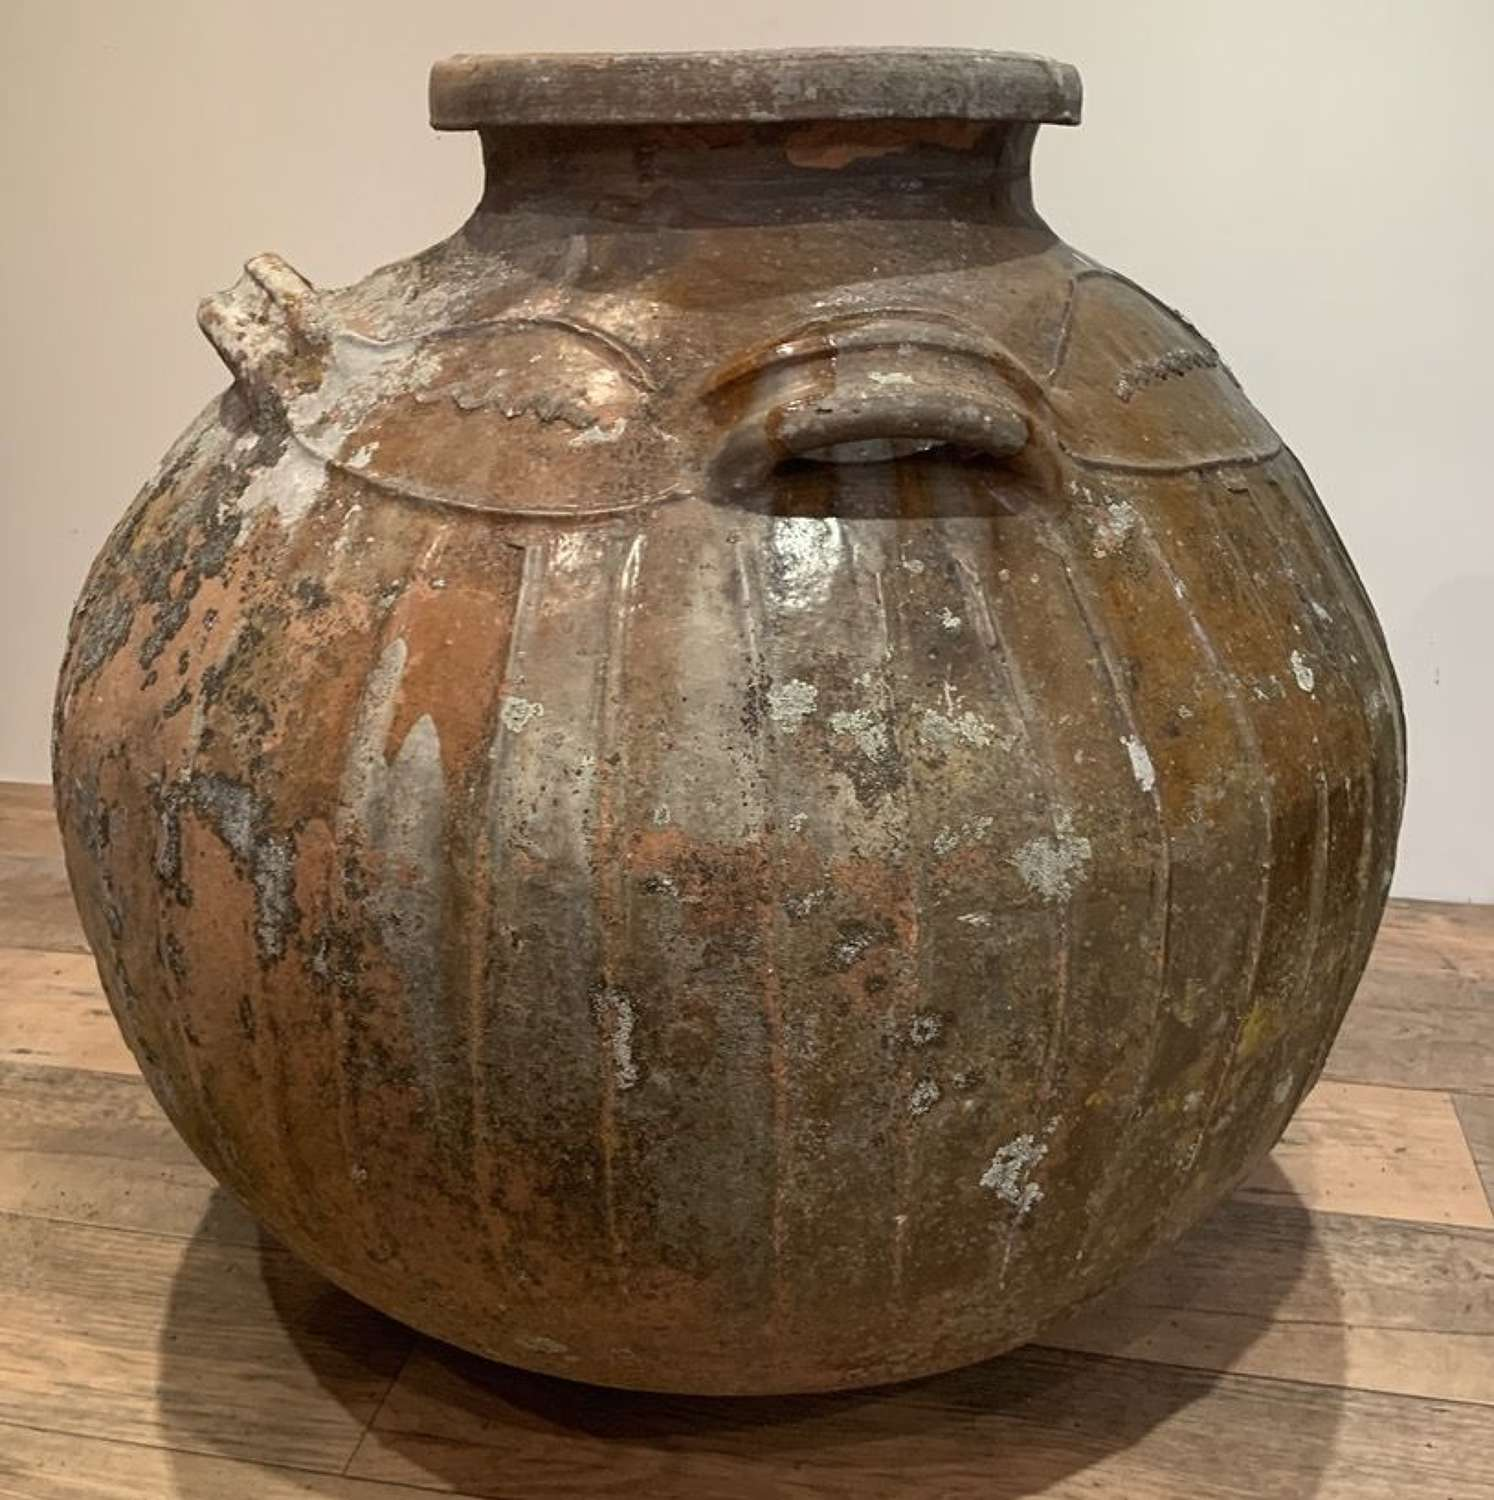 HUGE 18TH CENTURY TERRACOTTA WALNUT STORAGE POT